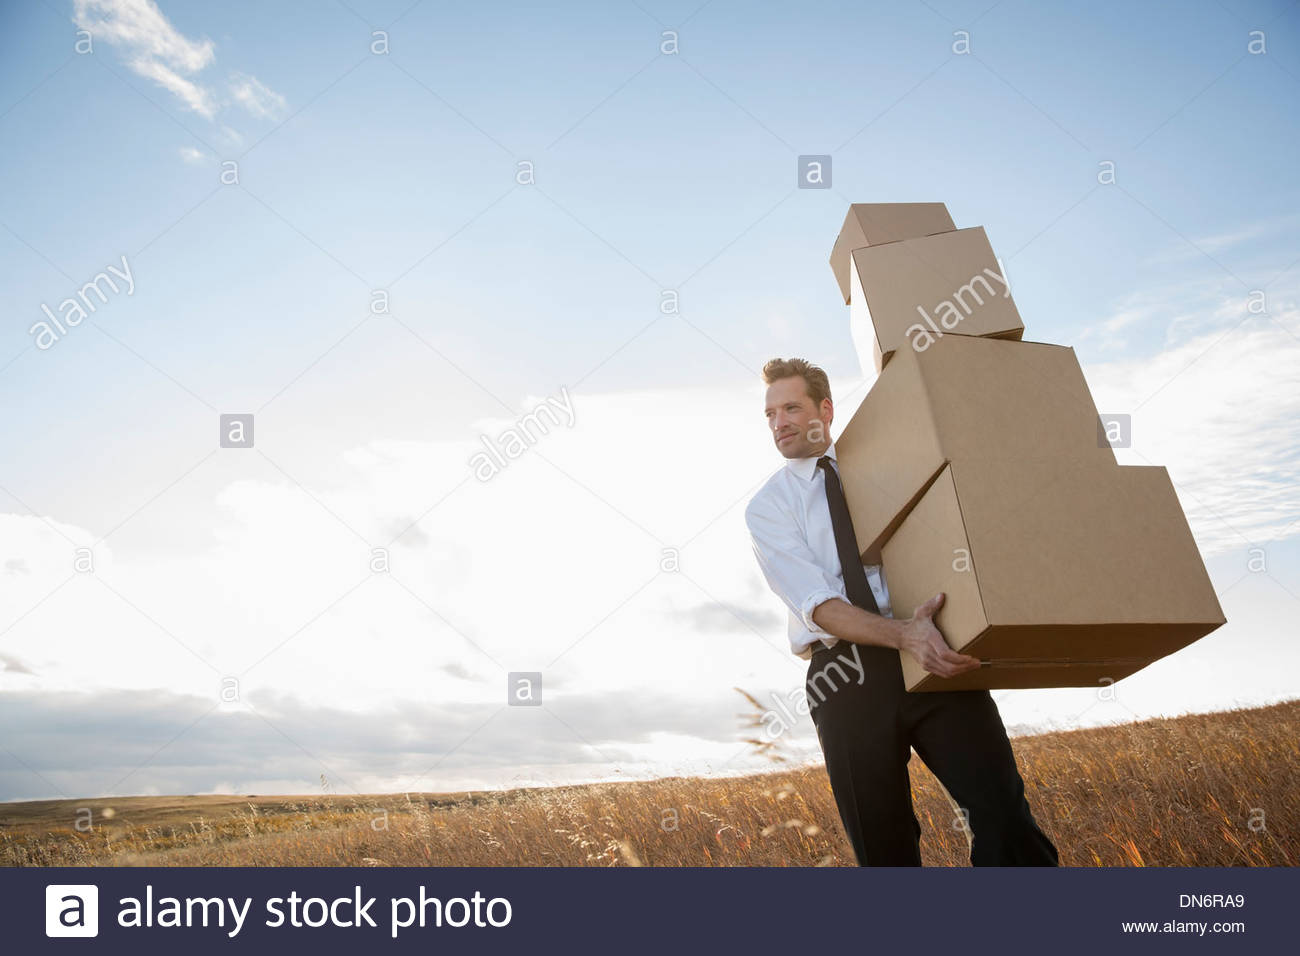 Businessman carrying stacked cardboard boxes - Stock Image